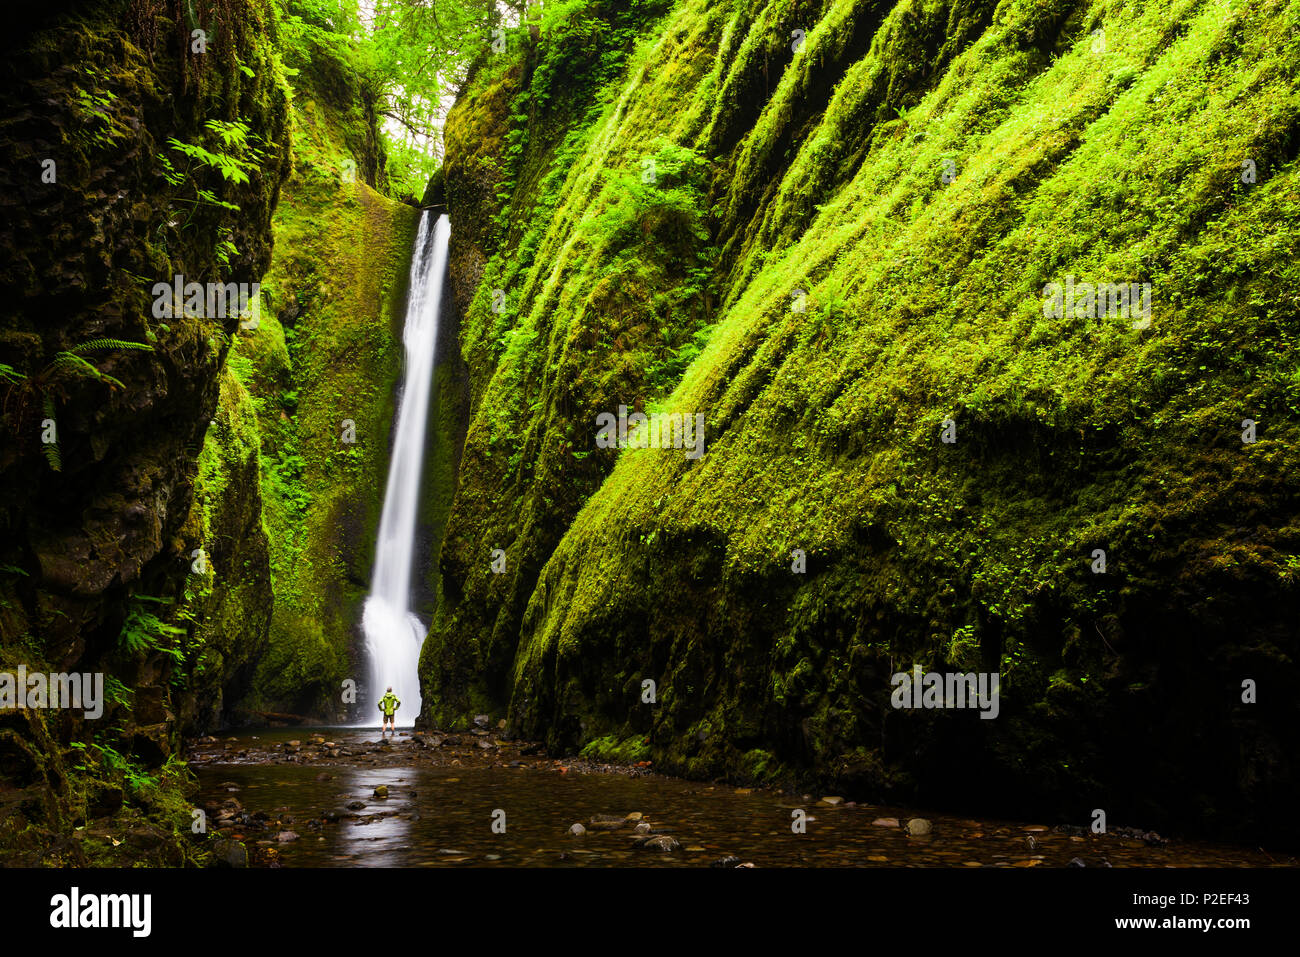 A hiker stands under Lower Oneonta Falls in the Columbia River Gorge in Oregon. This is one of the most spectacular short waterfall hikes around. - Stock Image